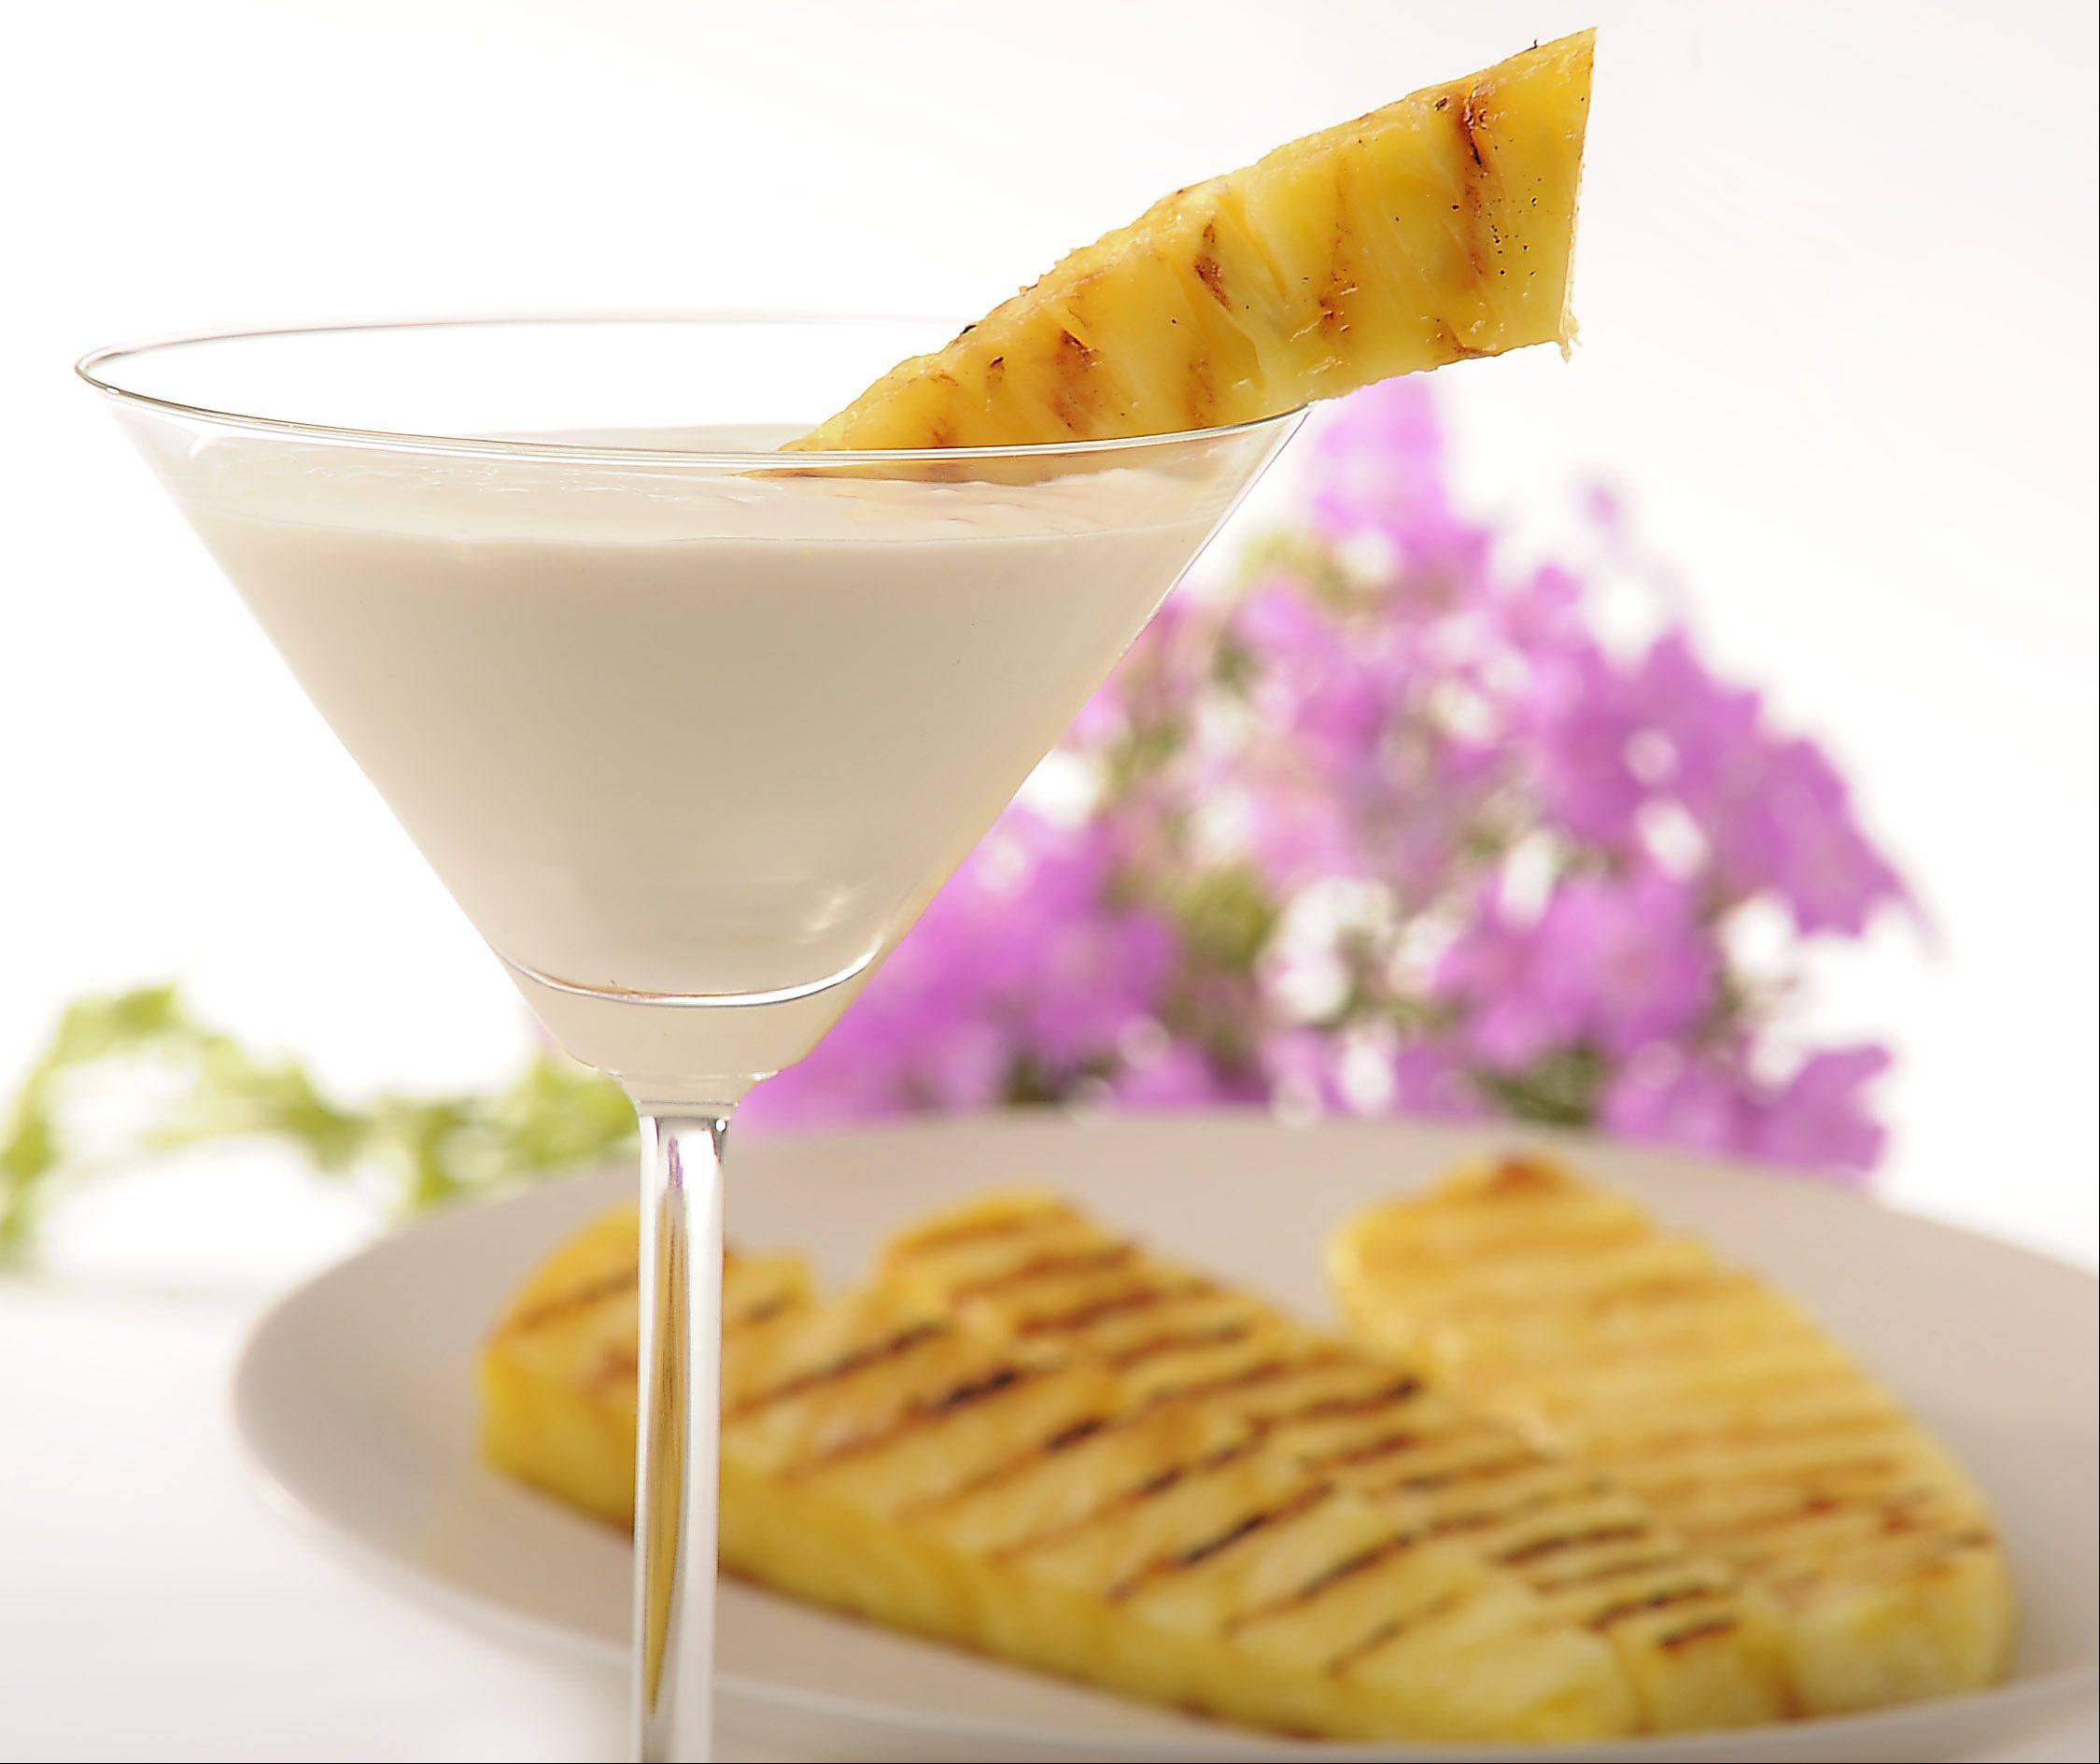 For a refreshing dessert, try grilled pineapple with orange-infused dipping sauce.